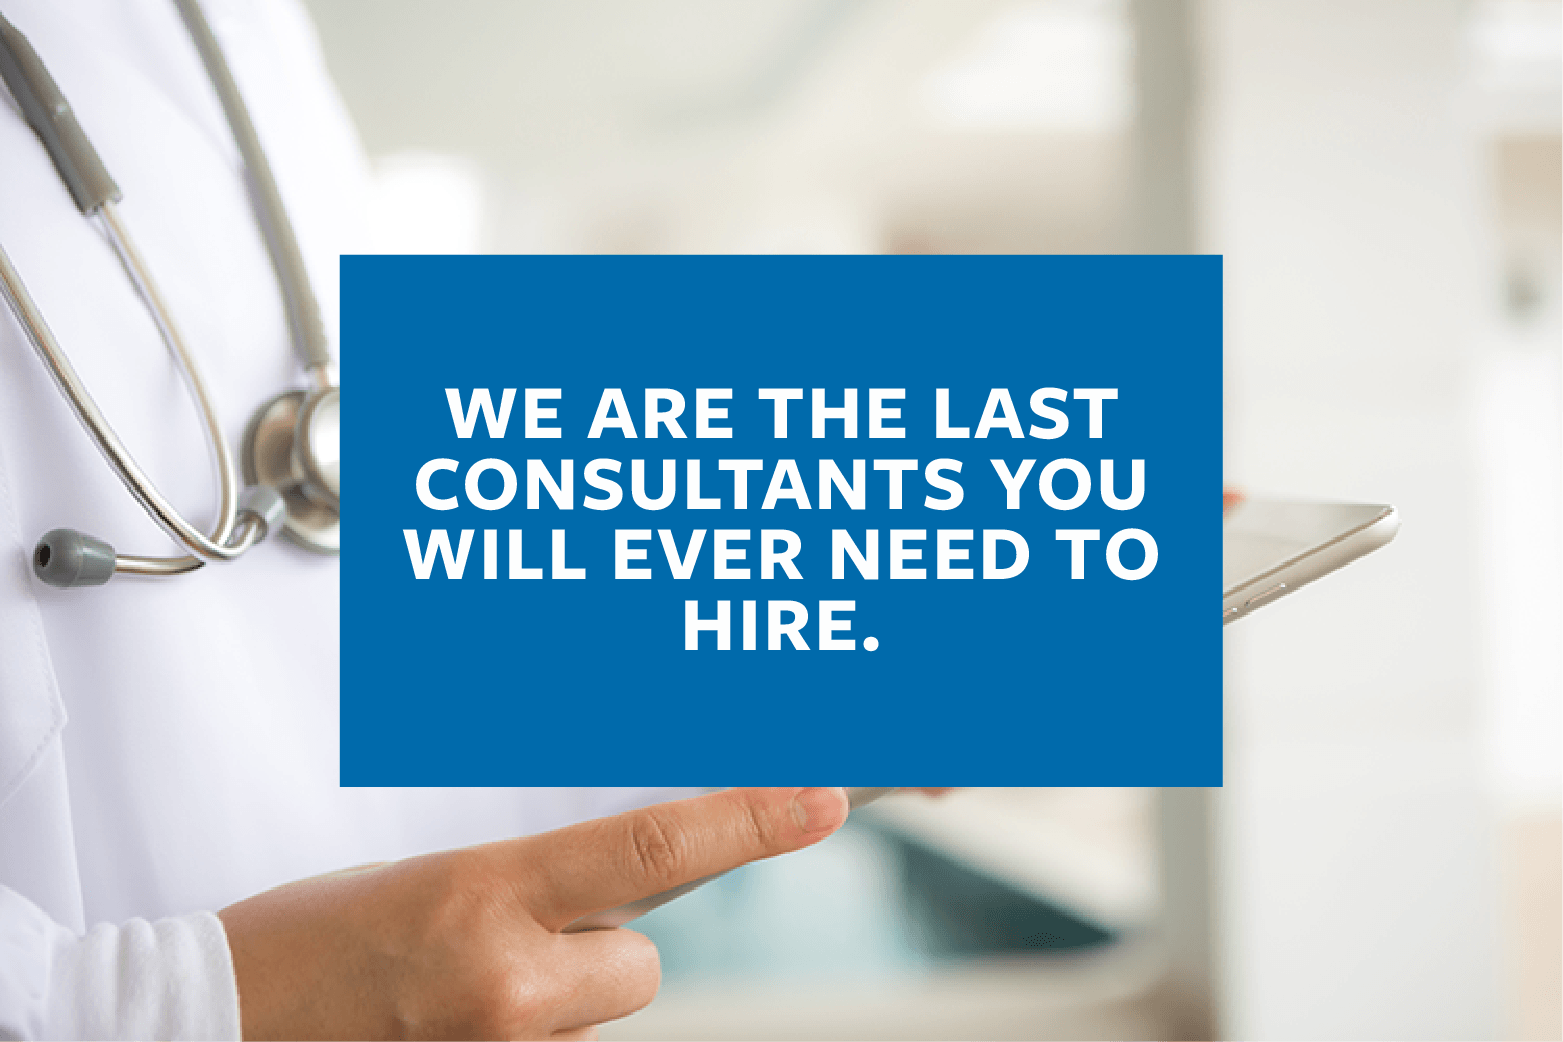 Trindent will be the last consultants you will need